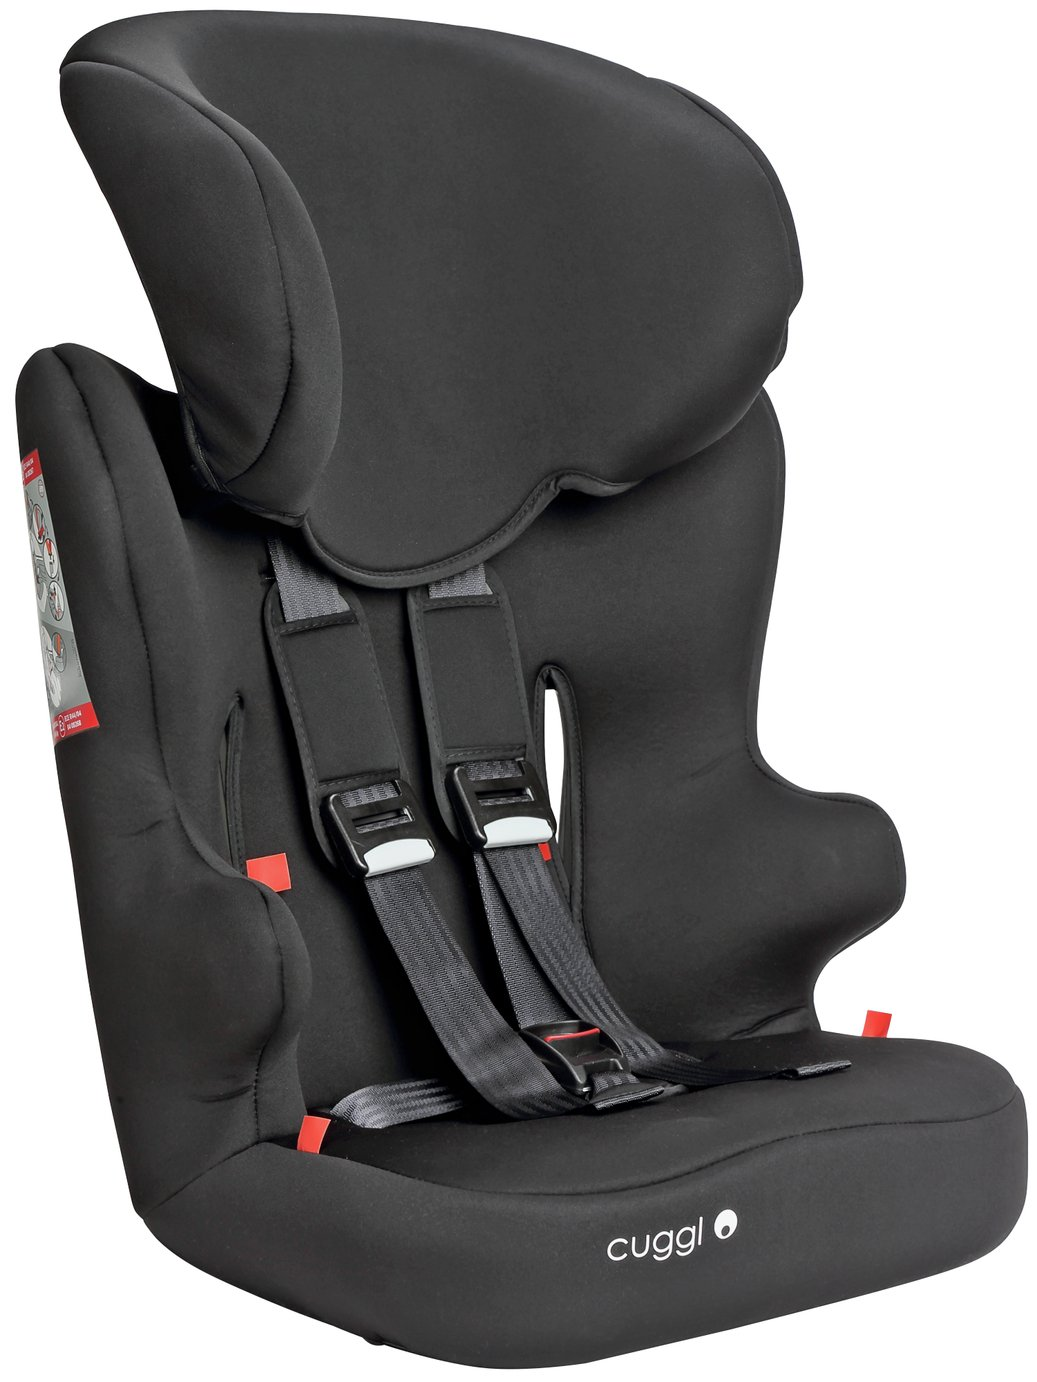 Buy Cuggl Chaffinch Group 1/2/3 Car Seat